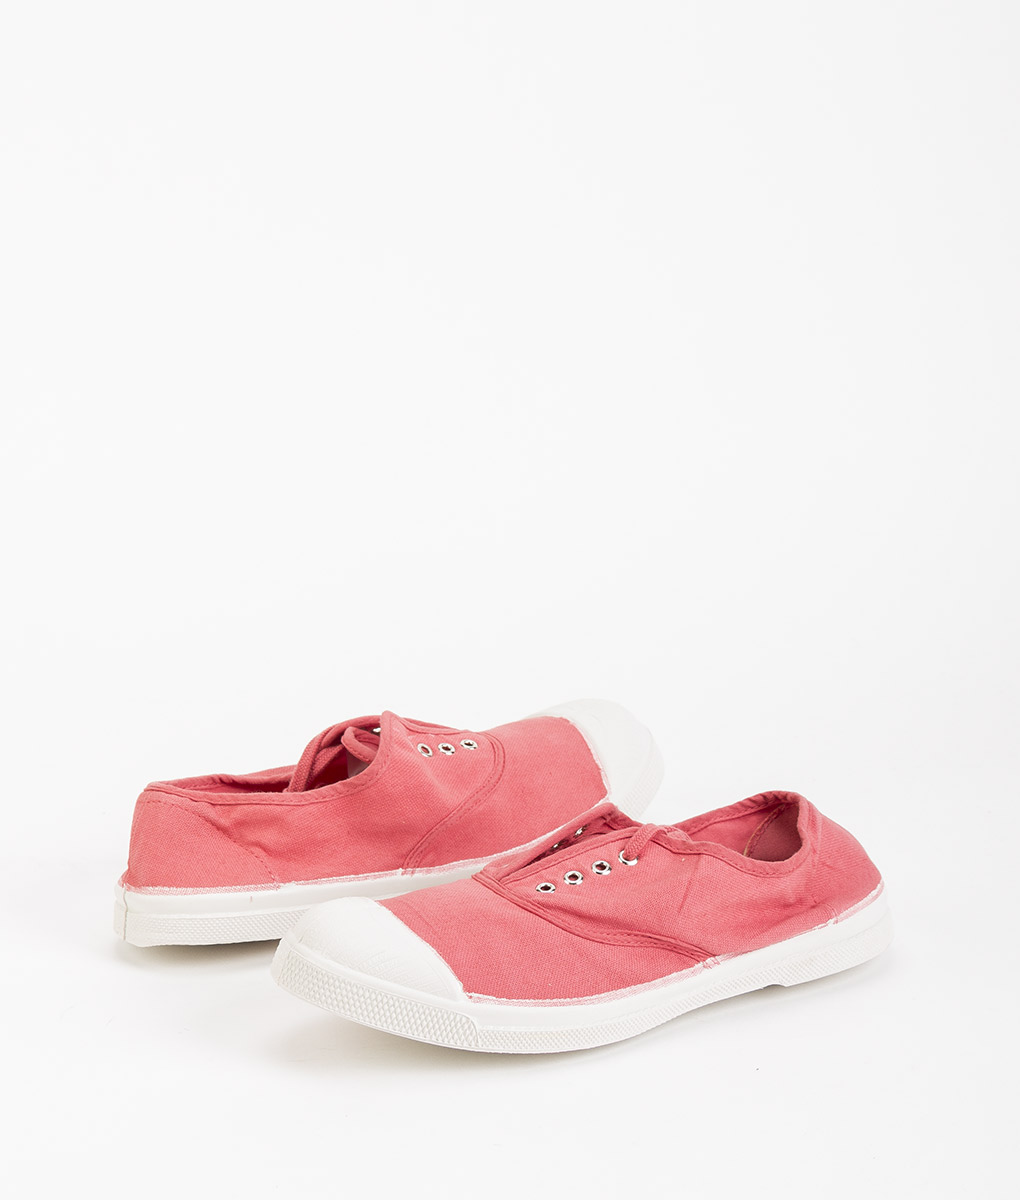 BENSIMON Women Sneakers 15004 TENNIS LACE, Blush 34.99 1